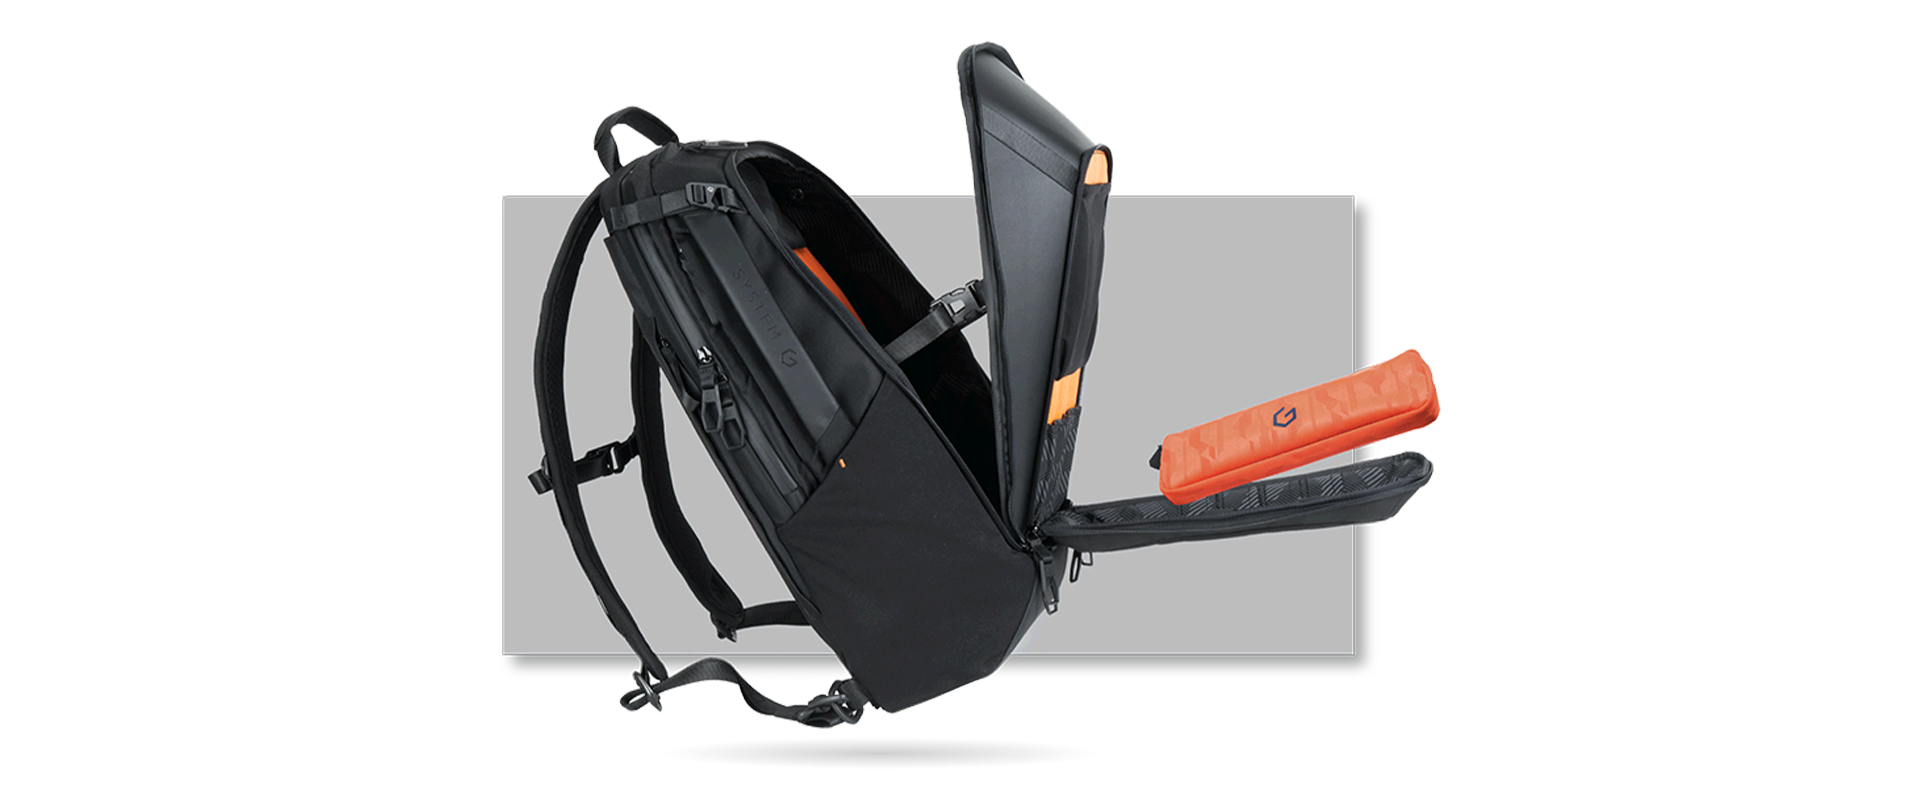 """SYSTEM G CARRY+ 17"""" BACKPACK - SYSTEM G"""